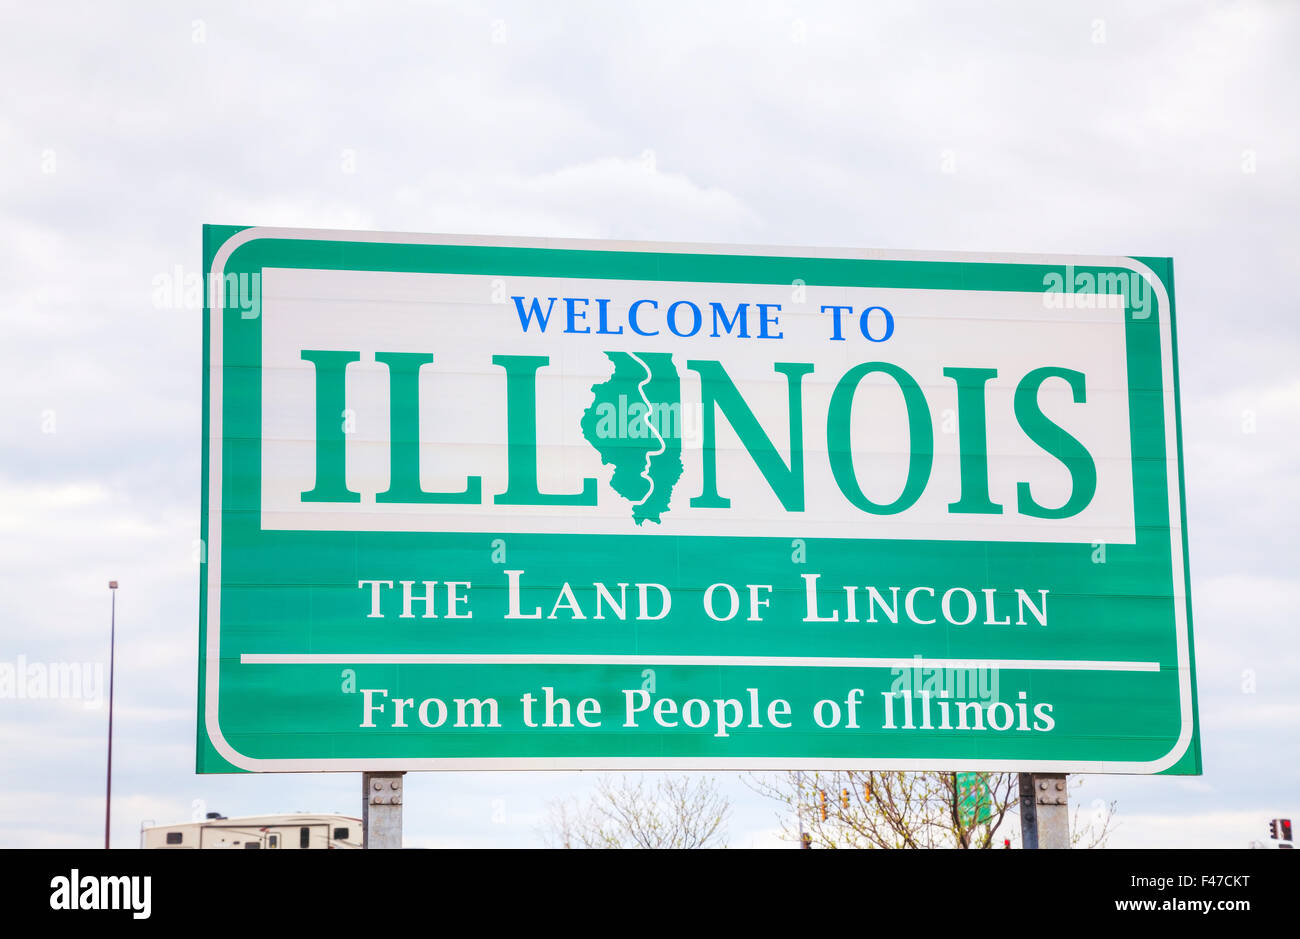 Welcome to Illinois sign - Stock Image